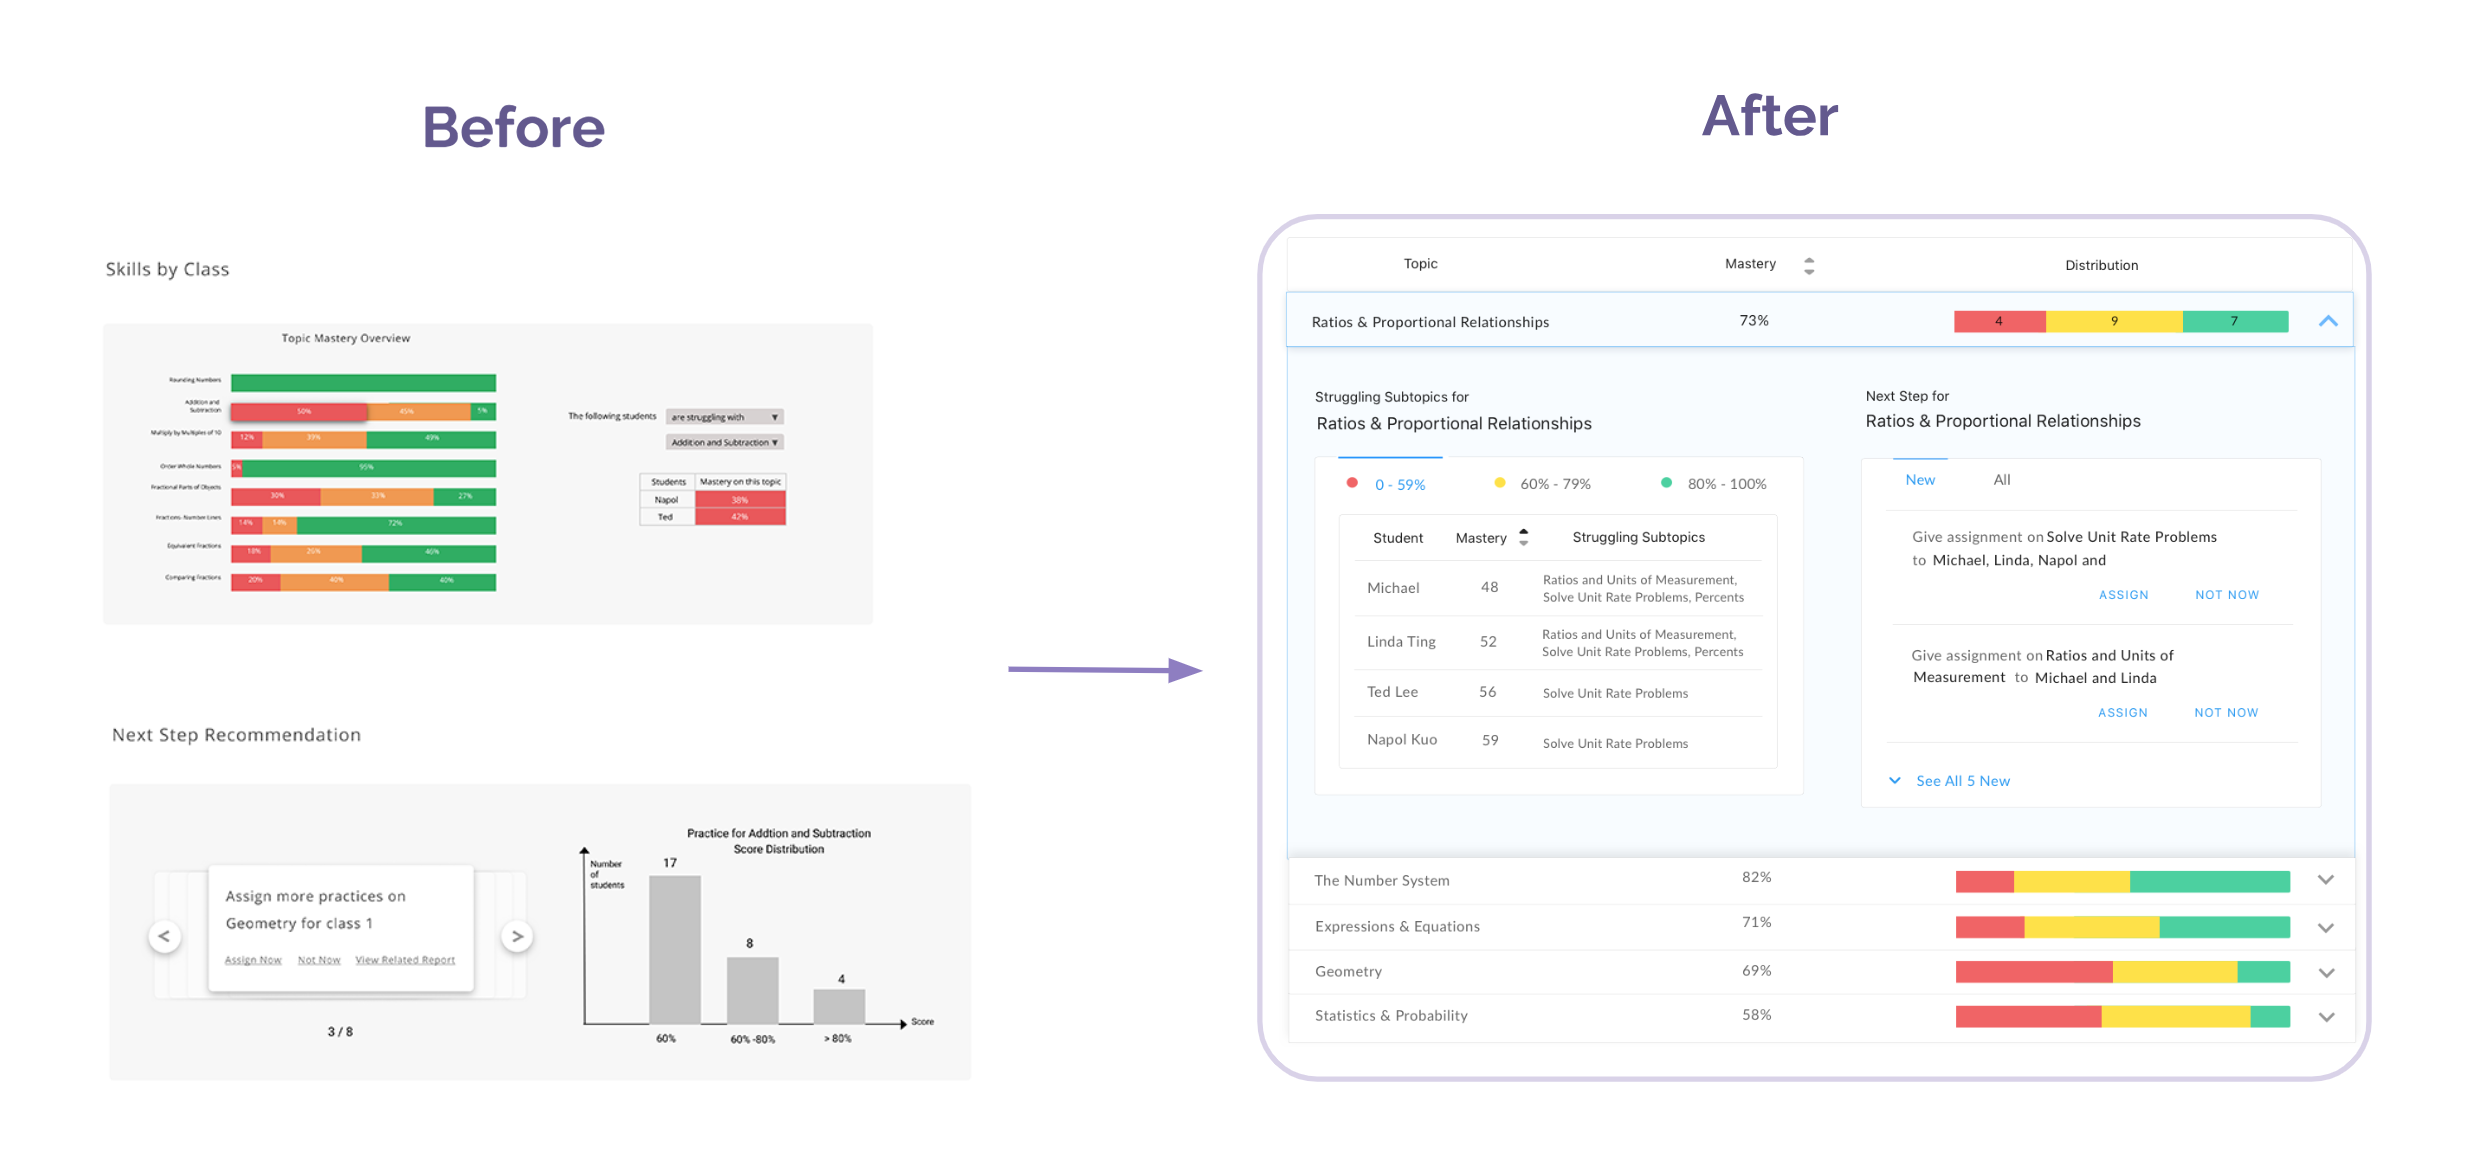 Actionable recommendation: iterations on placing related data nearly  Before: Next Step Recommendation and its supportive data Skills by Class are visually separated.  After: Next Step Recommendation and its supportive data are placed next to each other for a stronger visual link.